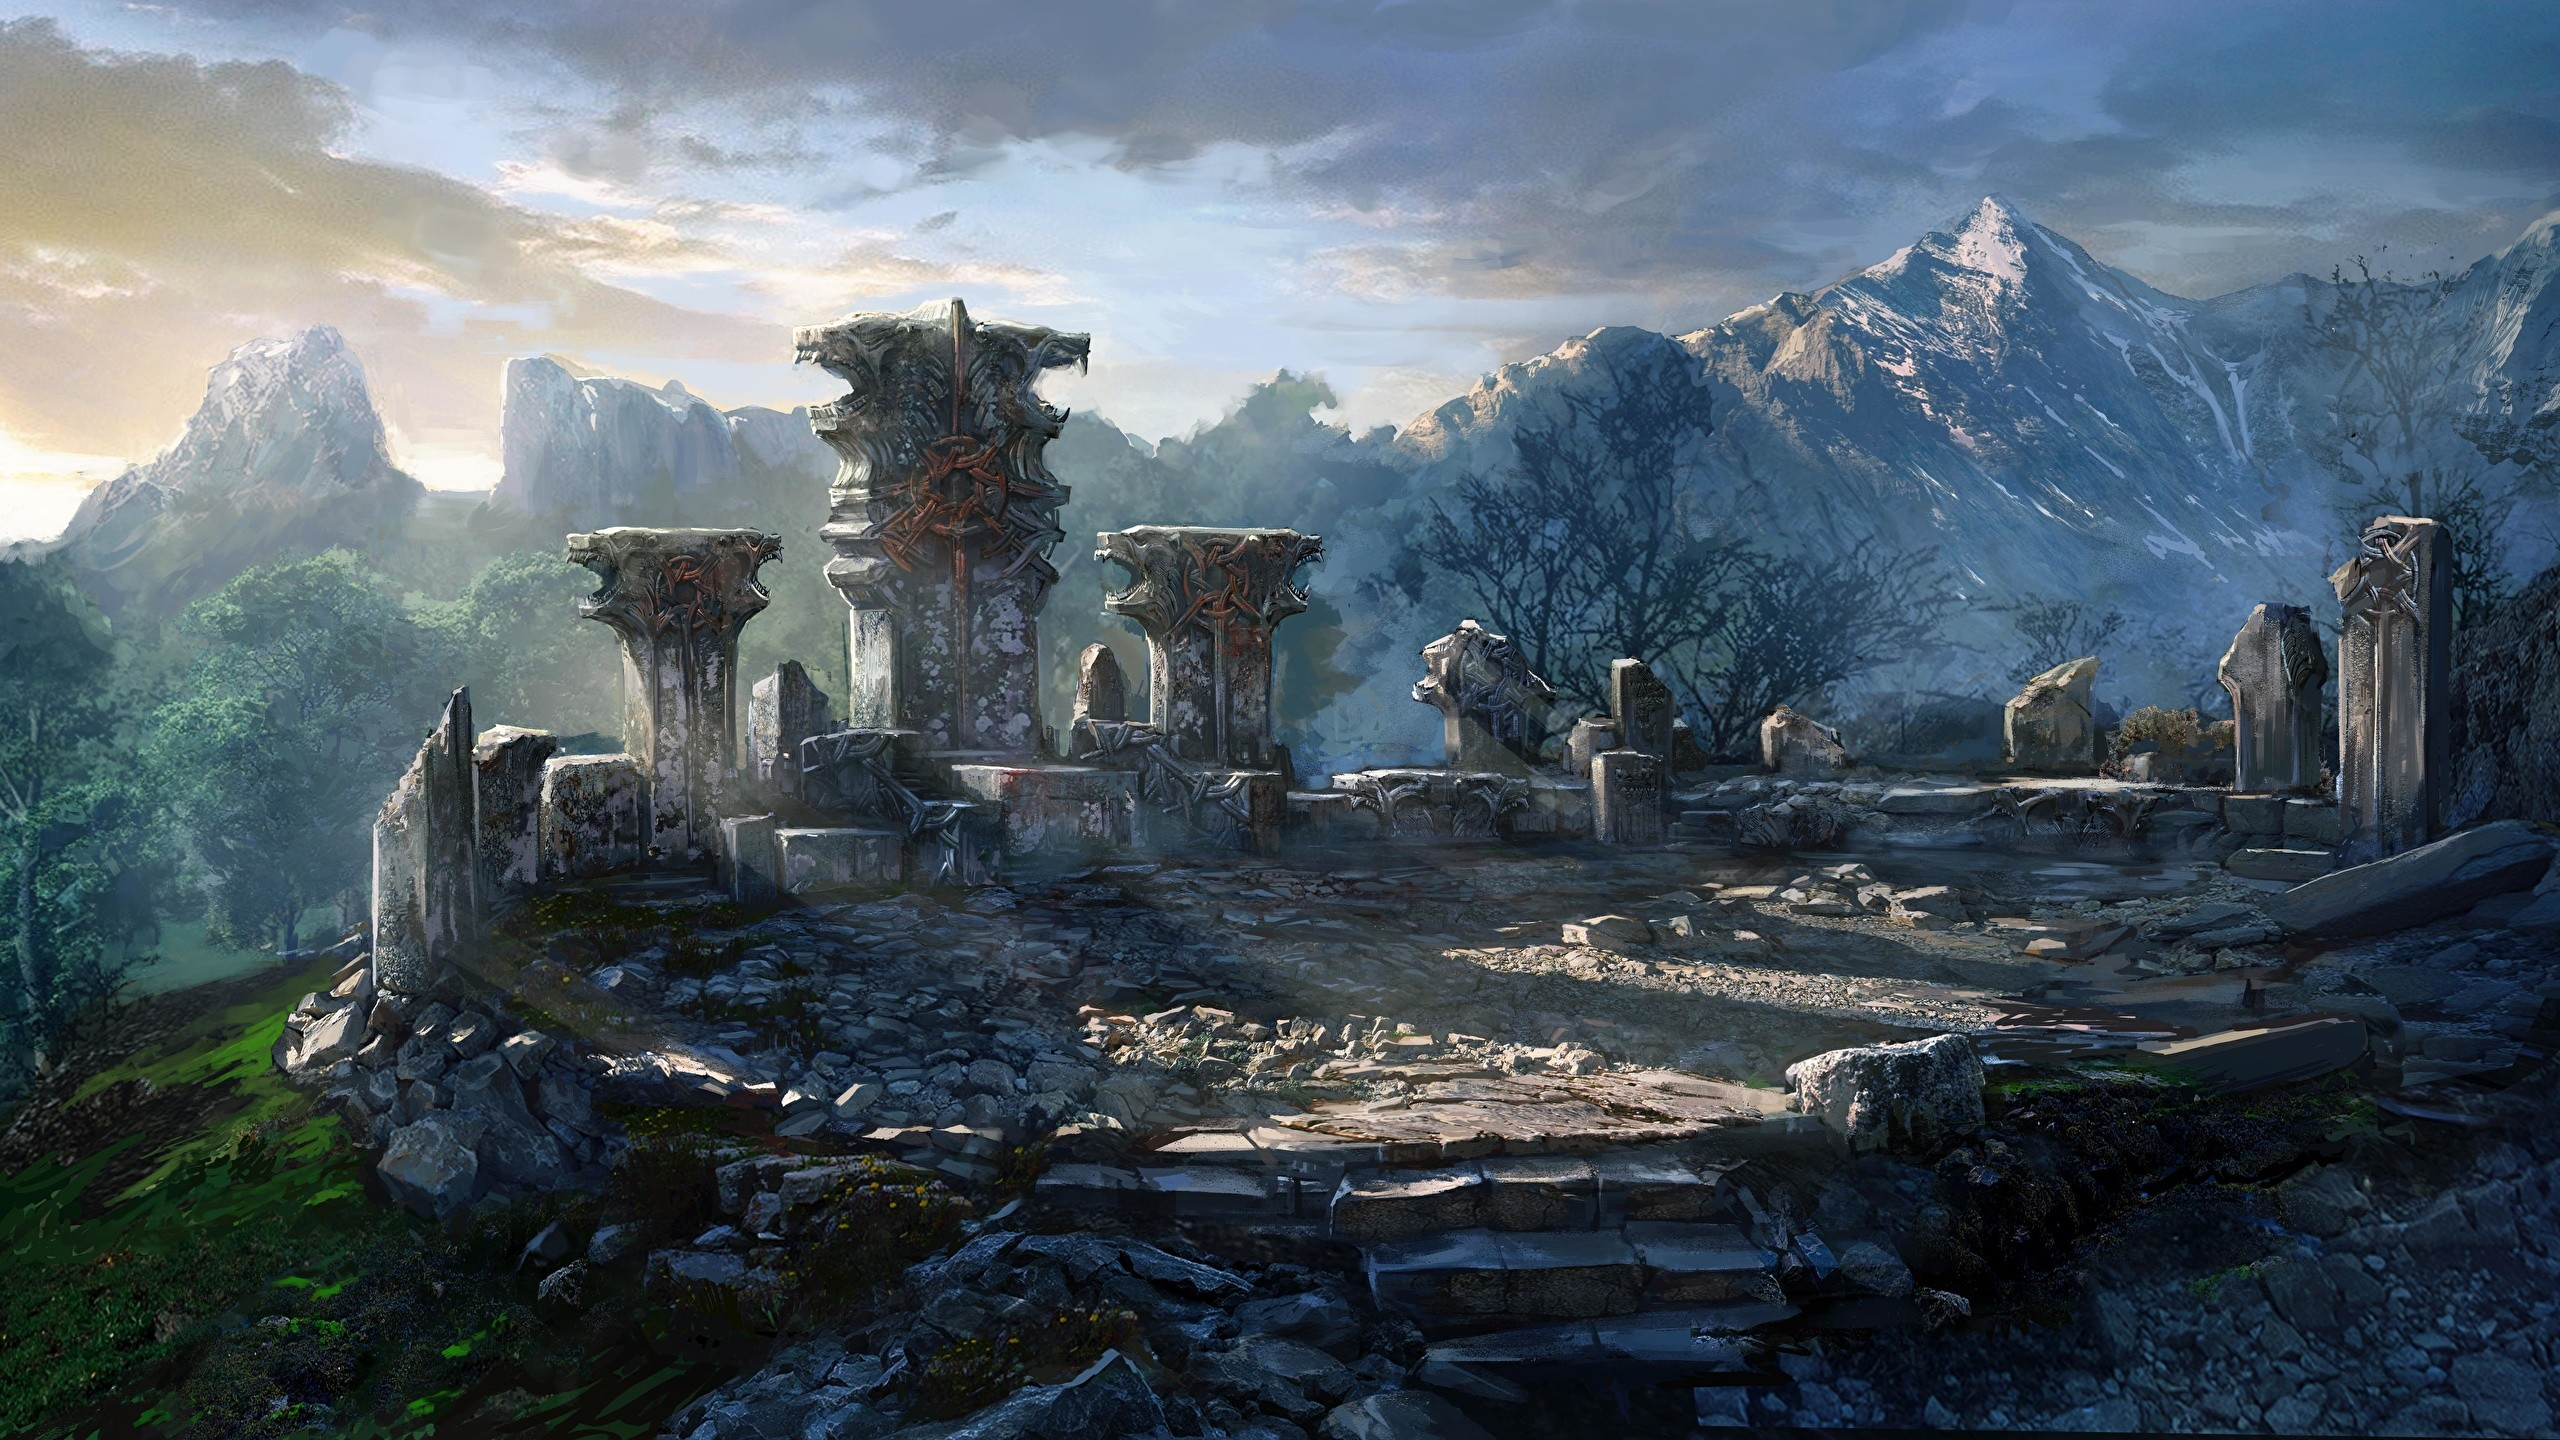 Images The Witcher 3: Wild Hunt Mountains Games Ruins 2560×1440